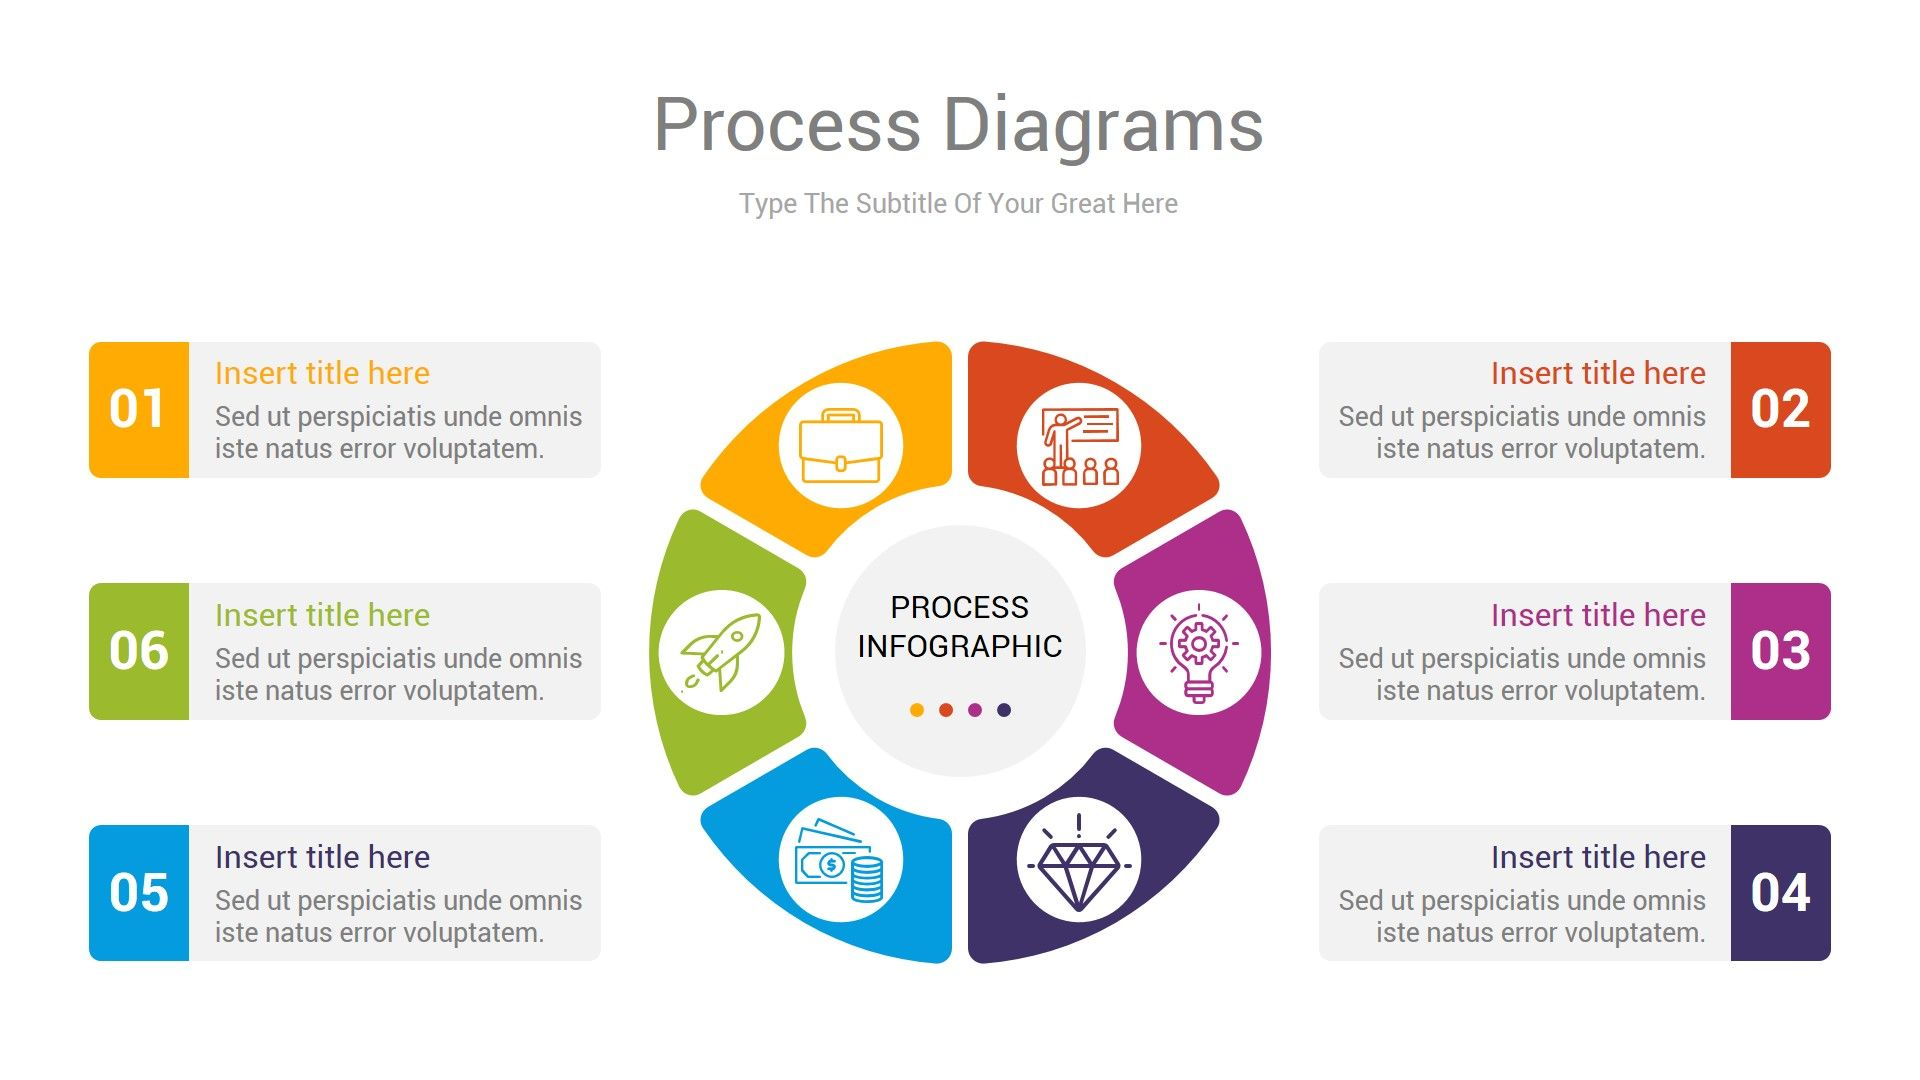 Process Flow Diagram Powerpoint Template In 2021 Process Flow Diagram Process Flow Chart Template Process Flow Process flow diagram powerpoint template